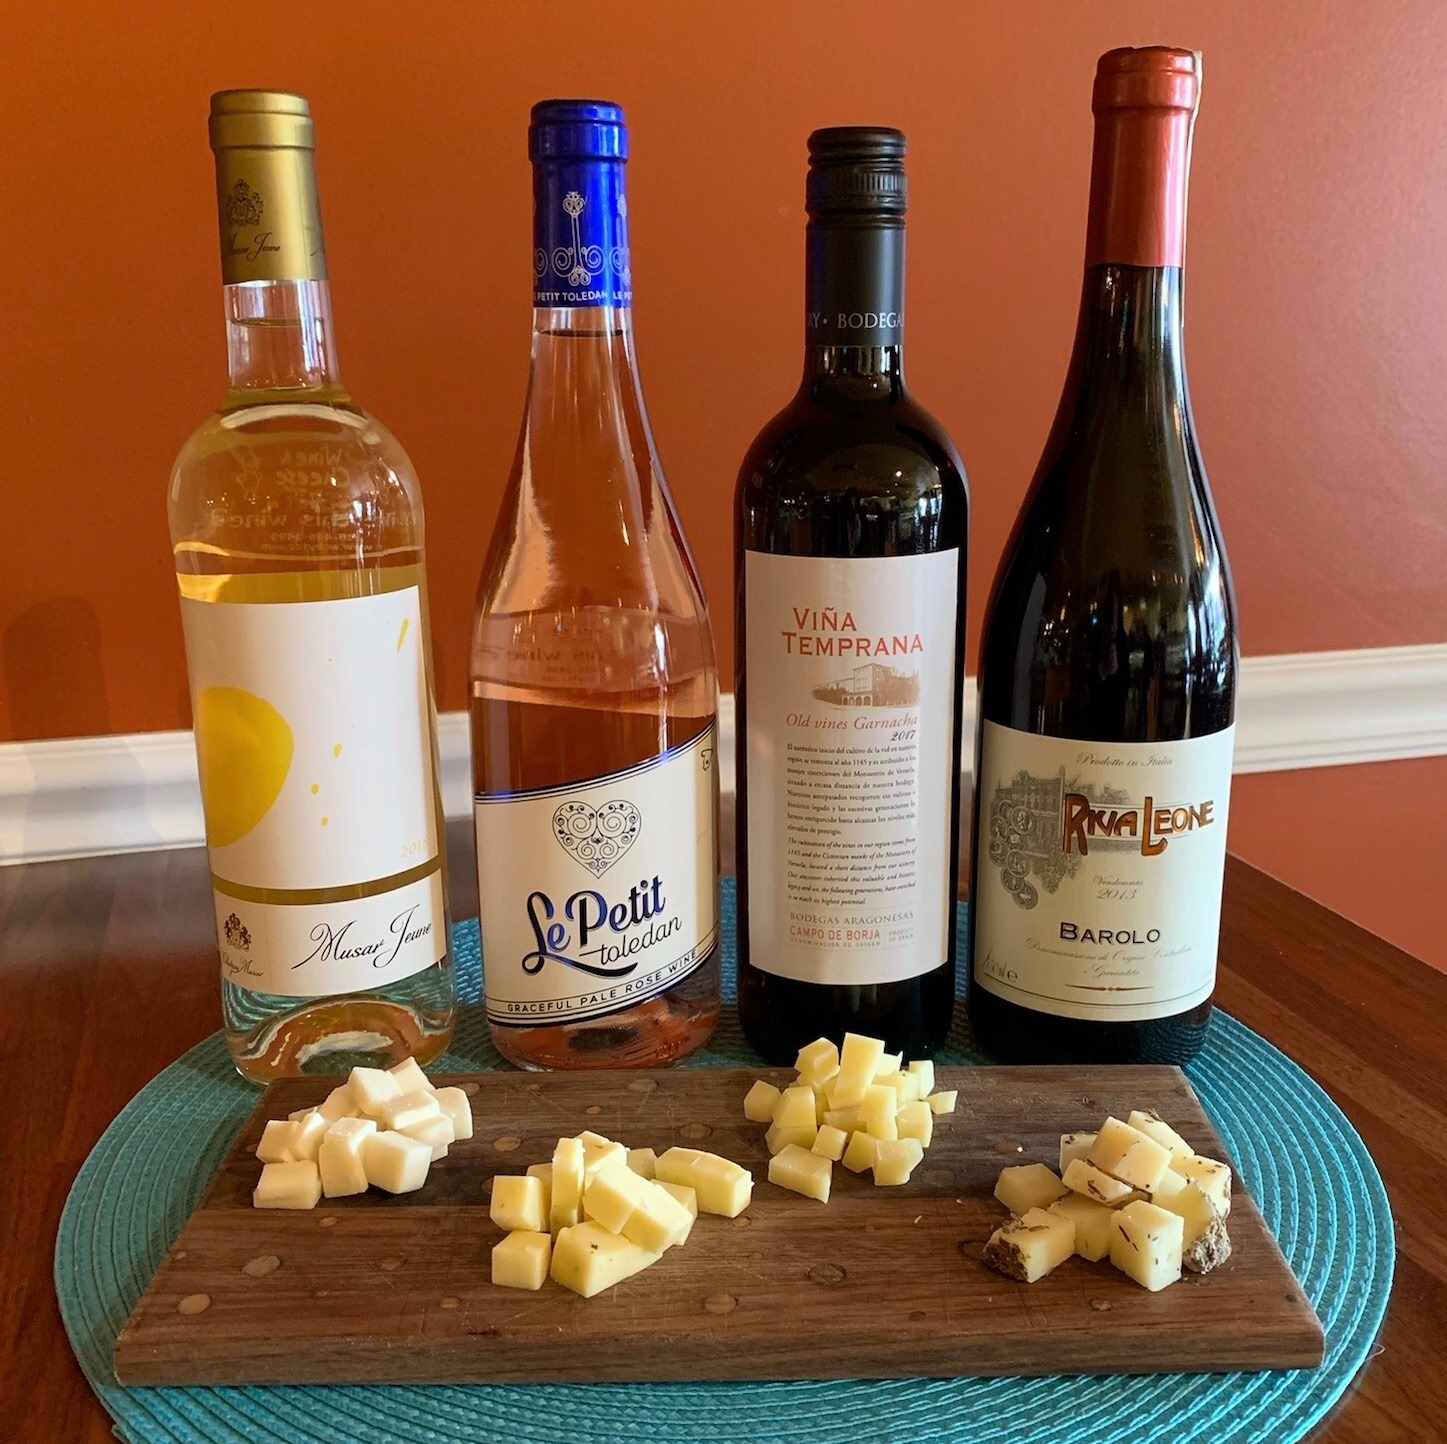 4 bottles of wine next to a board of cut up cheese